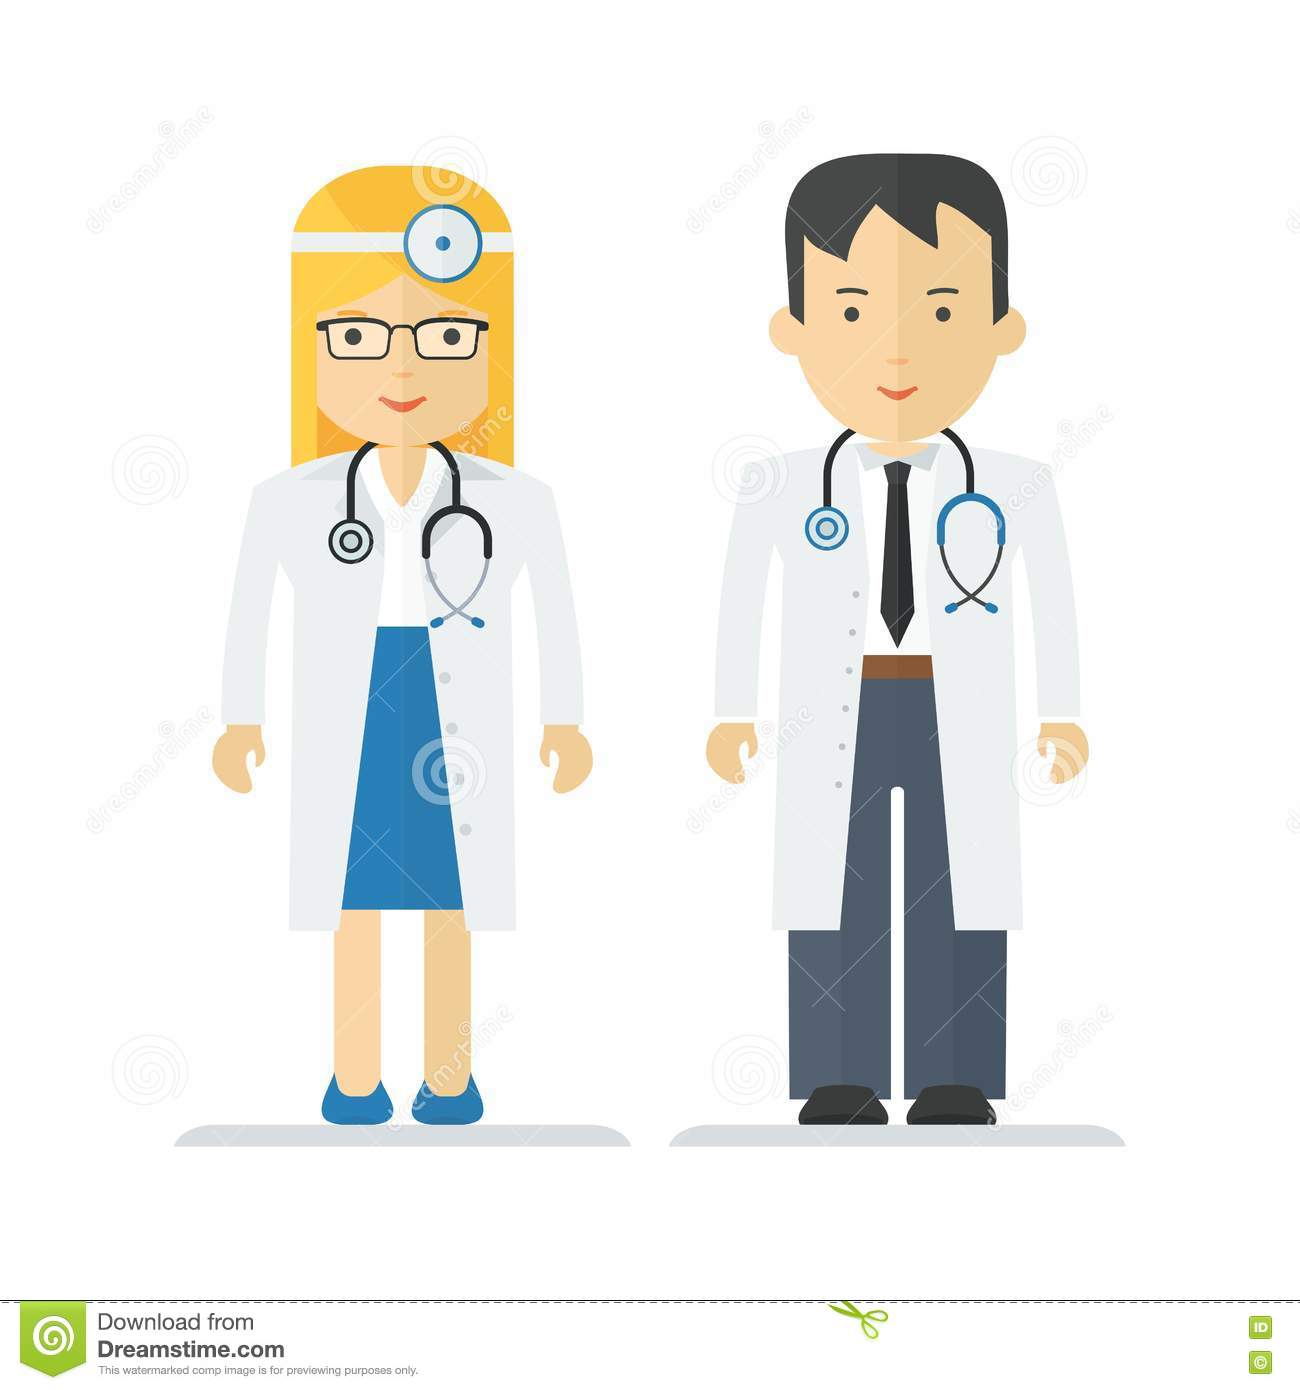 a profession of doctor Individuals searching for doctor of medicine: steps to become a medical doctor found the following related articles, links, and information useful.